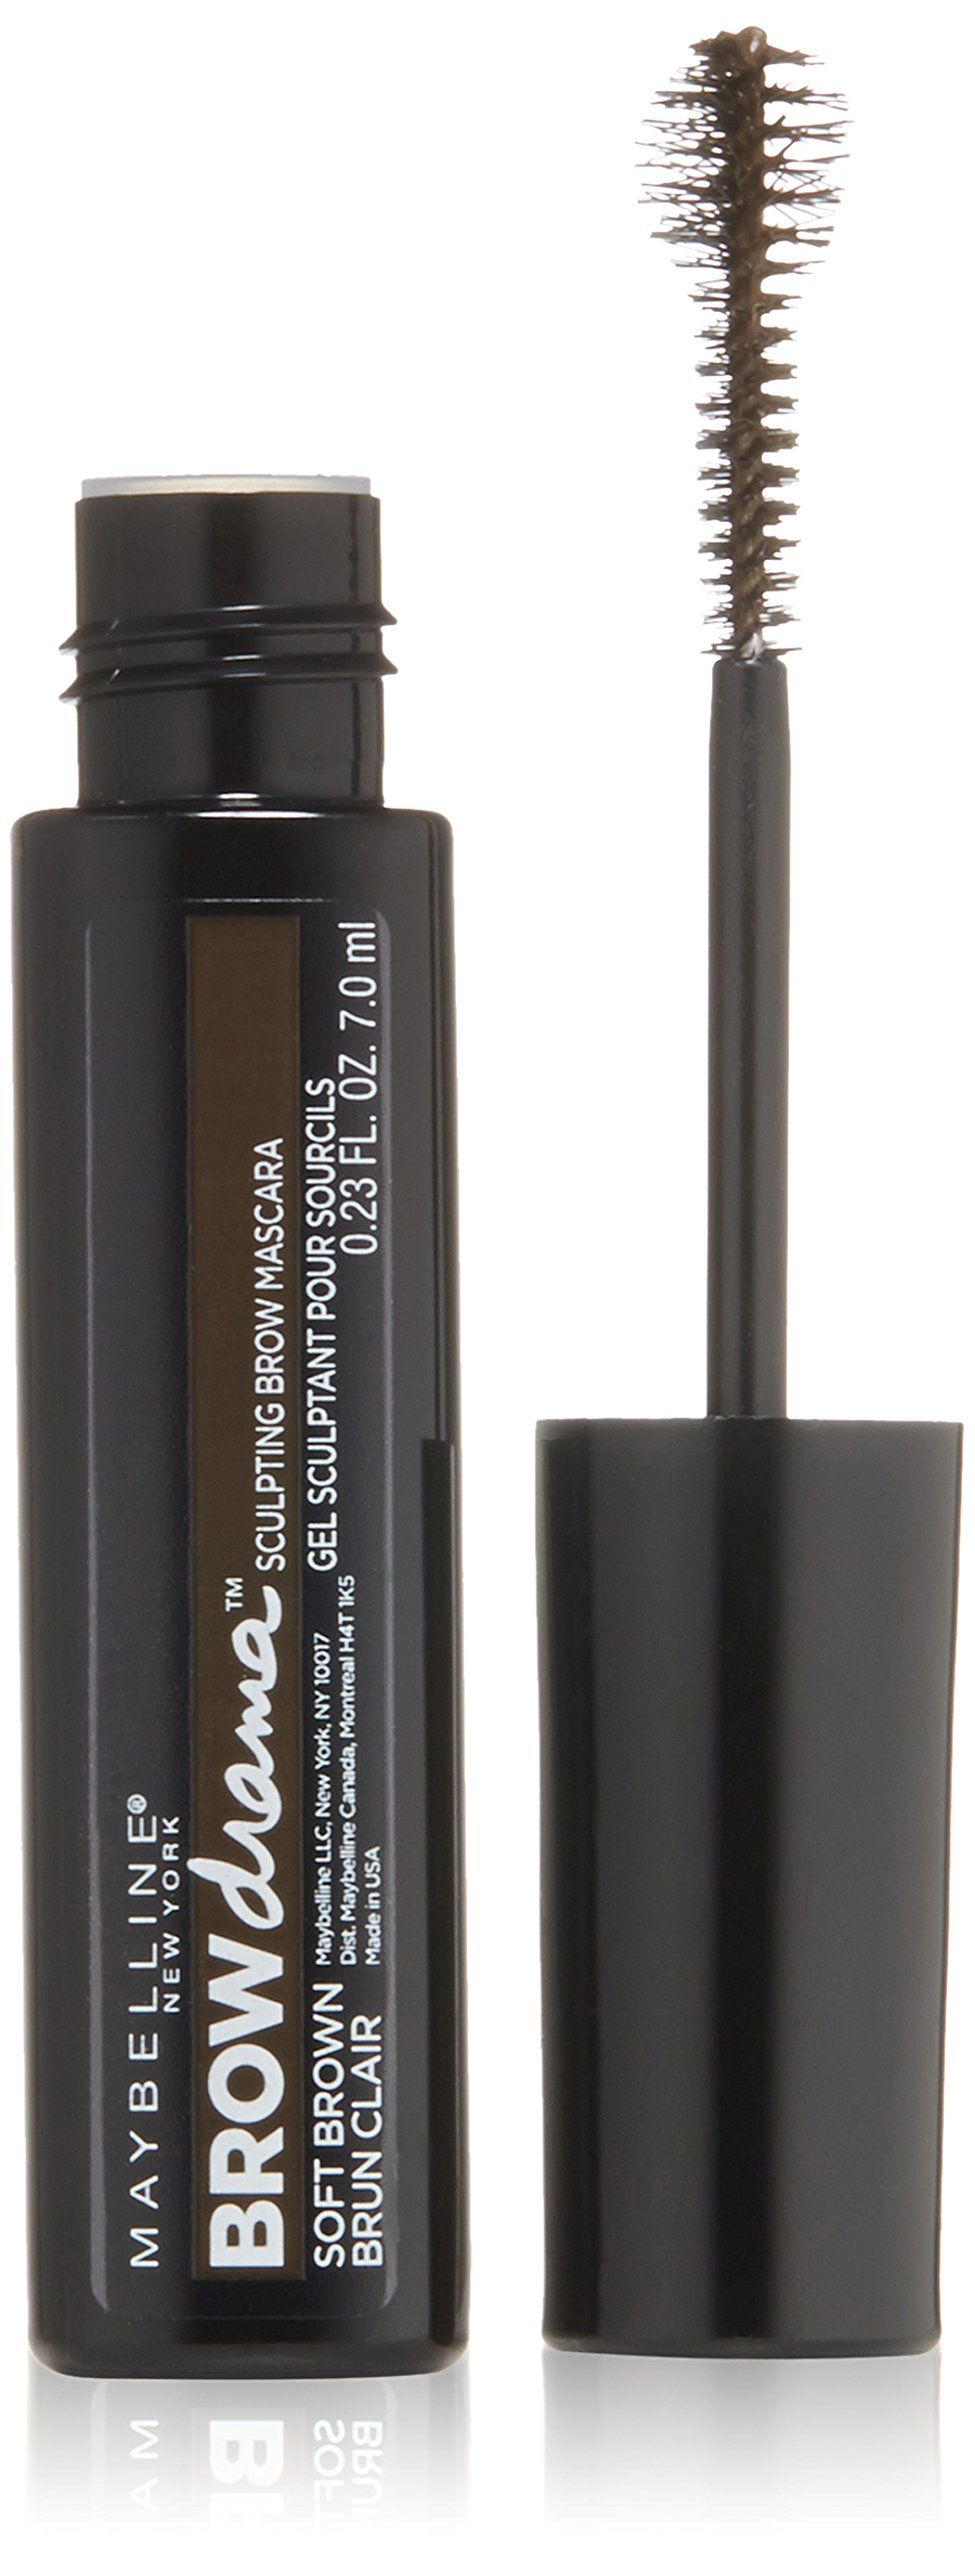 Maybelline New York Eyestudio Brow Drama Sculpting Brow Mascara, Soft Brown, 0.23 Fluid Ounce. New scultping ball brush for bold and defined brows. Colored gel tints brows and comfortably holds hairs in place. No clumping or flaking.